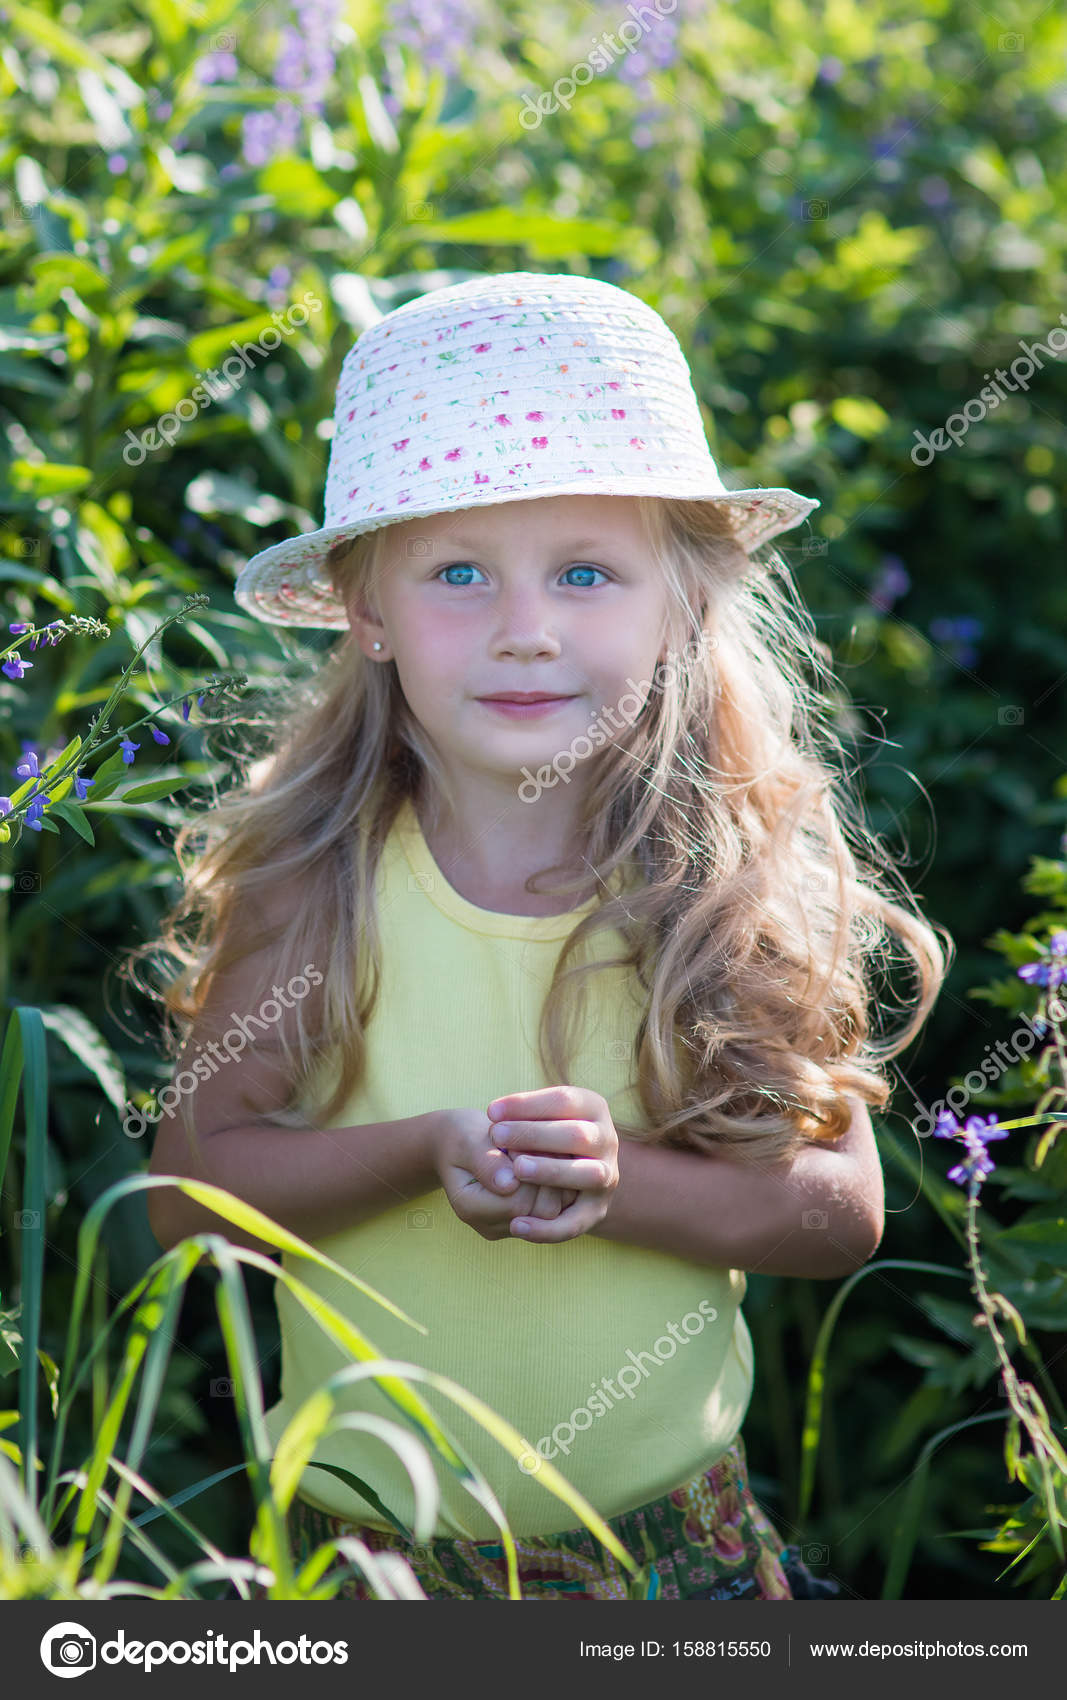 smiling cute baby girl 4-5 year old holding flower wearing big hat